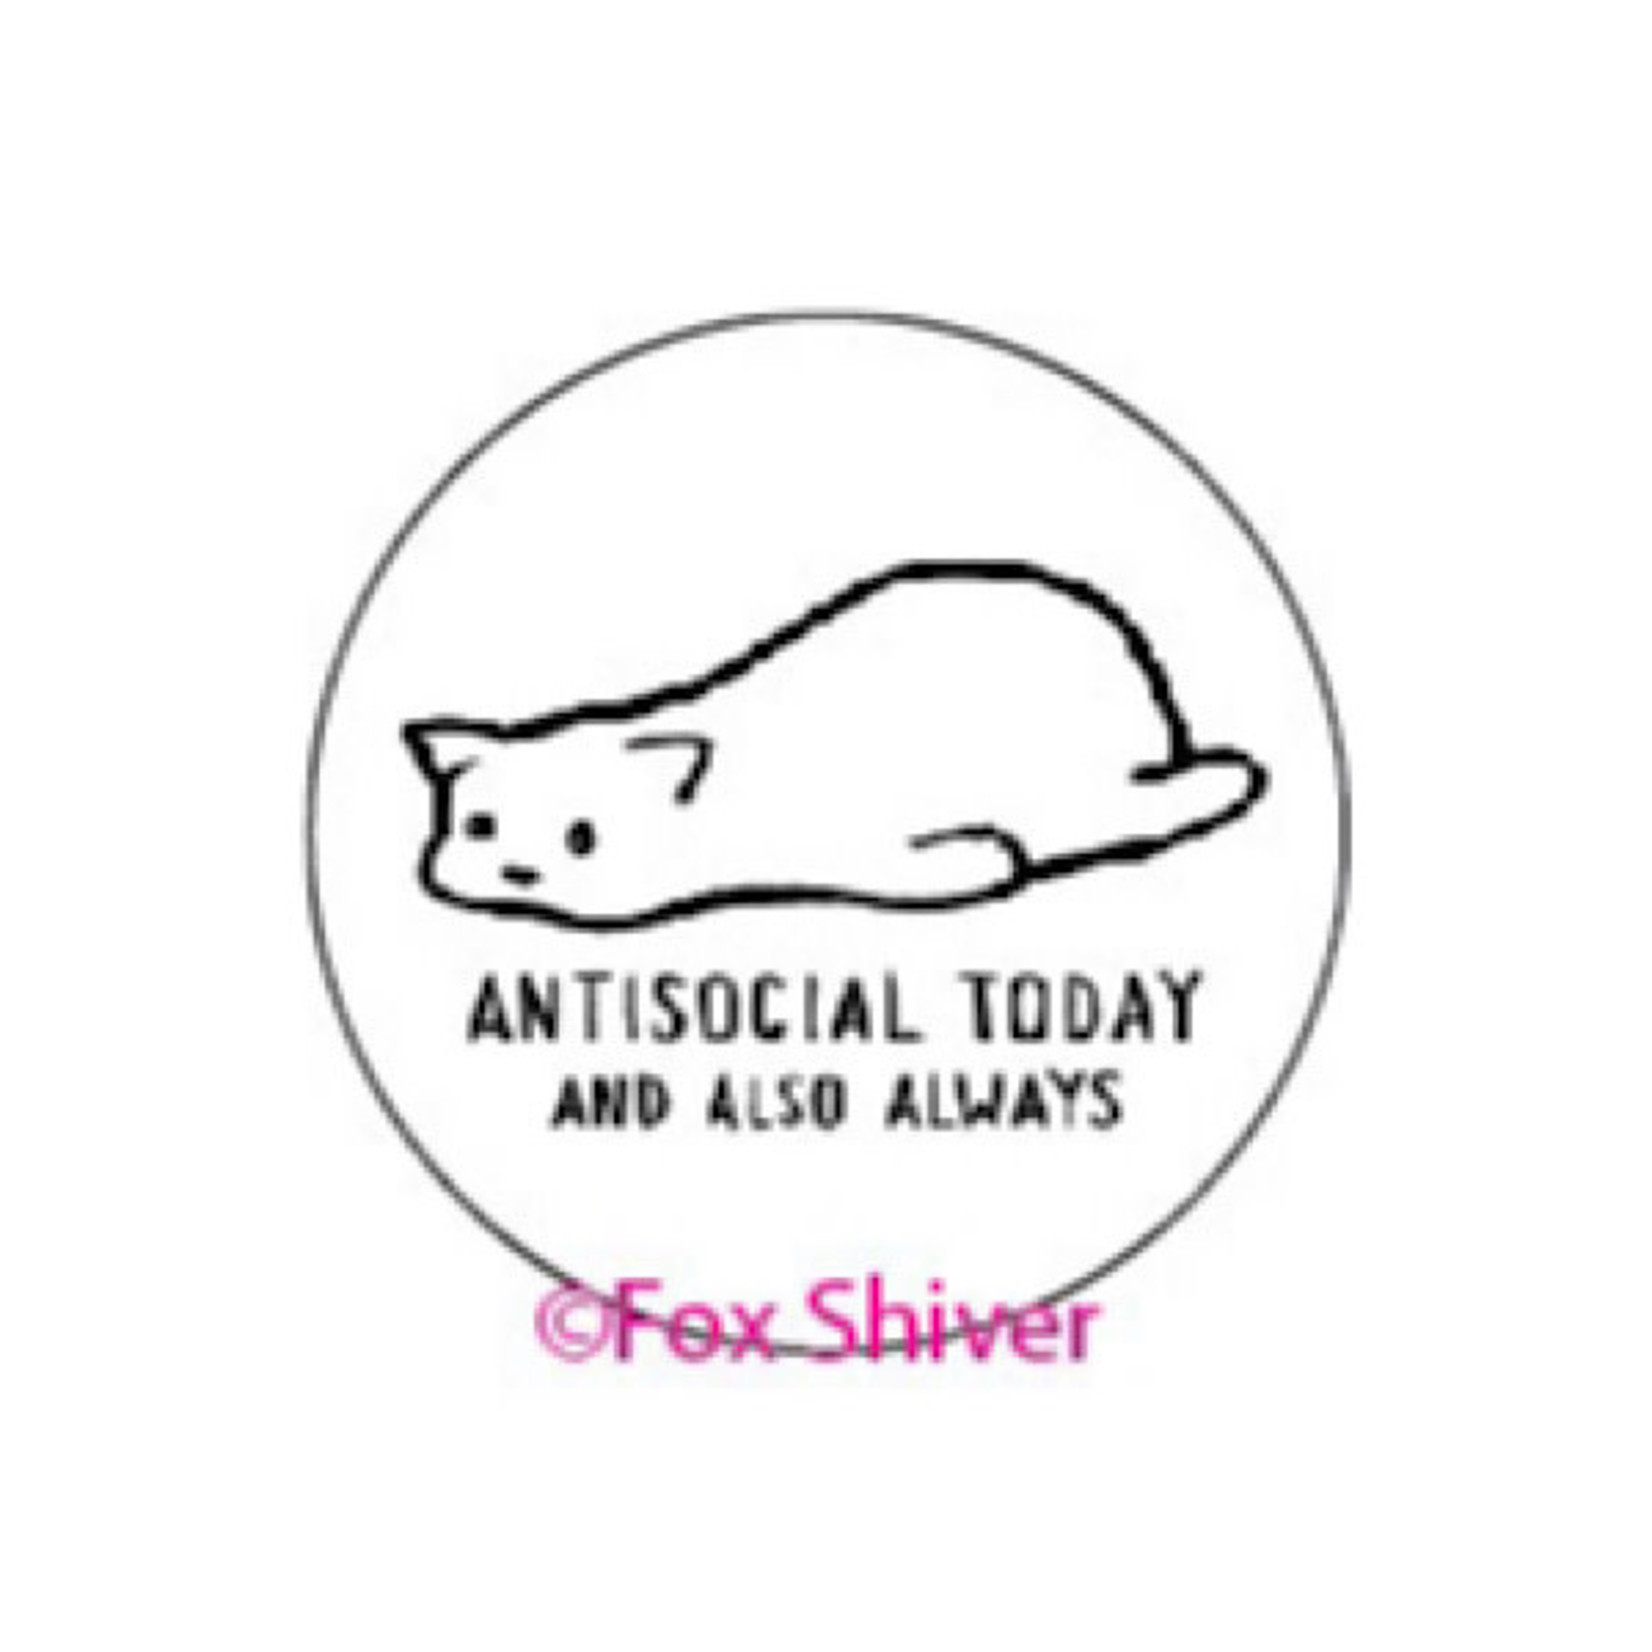 Pin - Antisocial Today And Also Always (Cat)